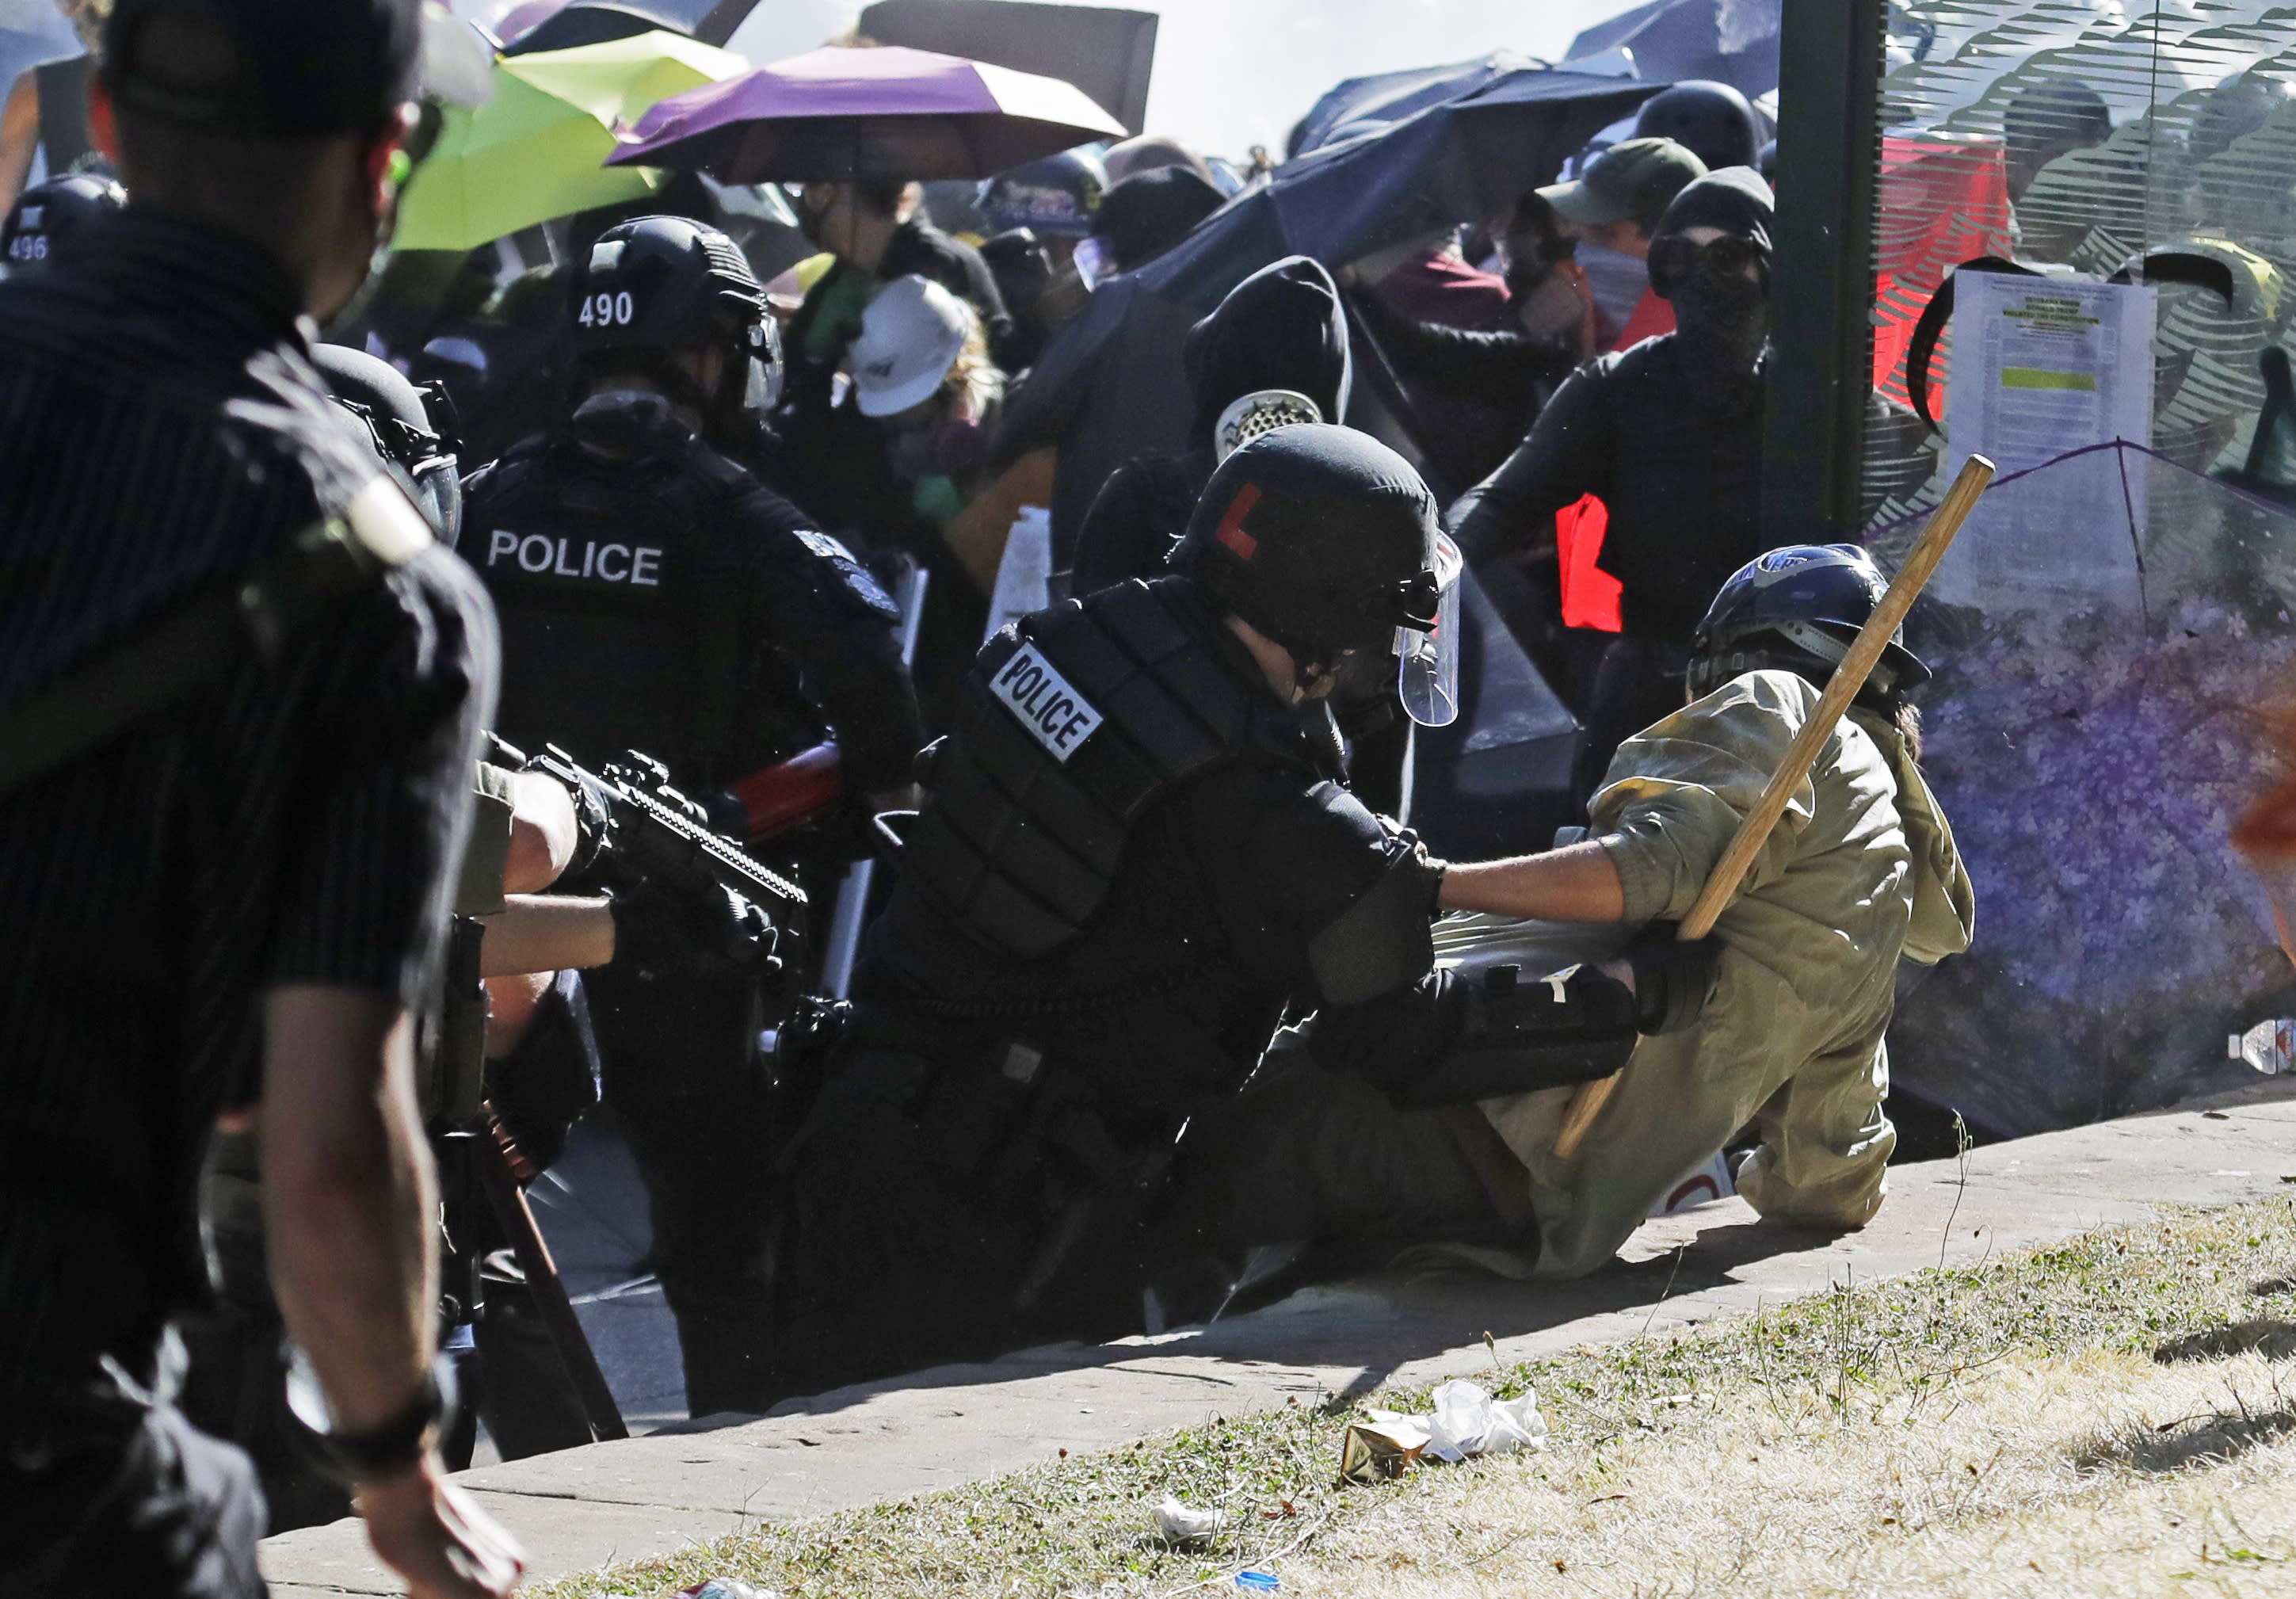 Police take down a protester, Saturday, July 25, 2020, near Seattle Central Community College in Seattle. A large group of protesters were marching Saturday in Seattle in support of Black Lives Matter and against police brutality and racial injustice. (AP Photo/Ted S. Warren)